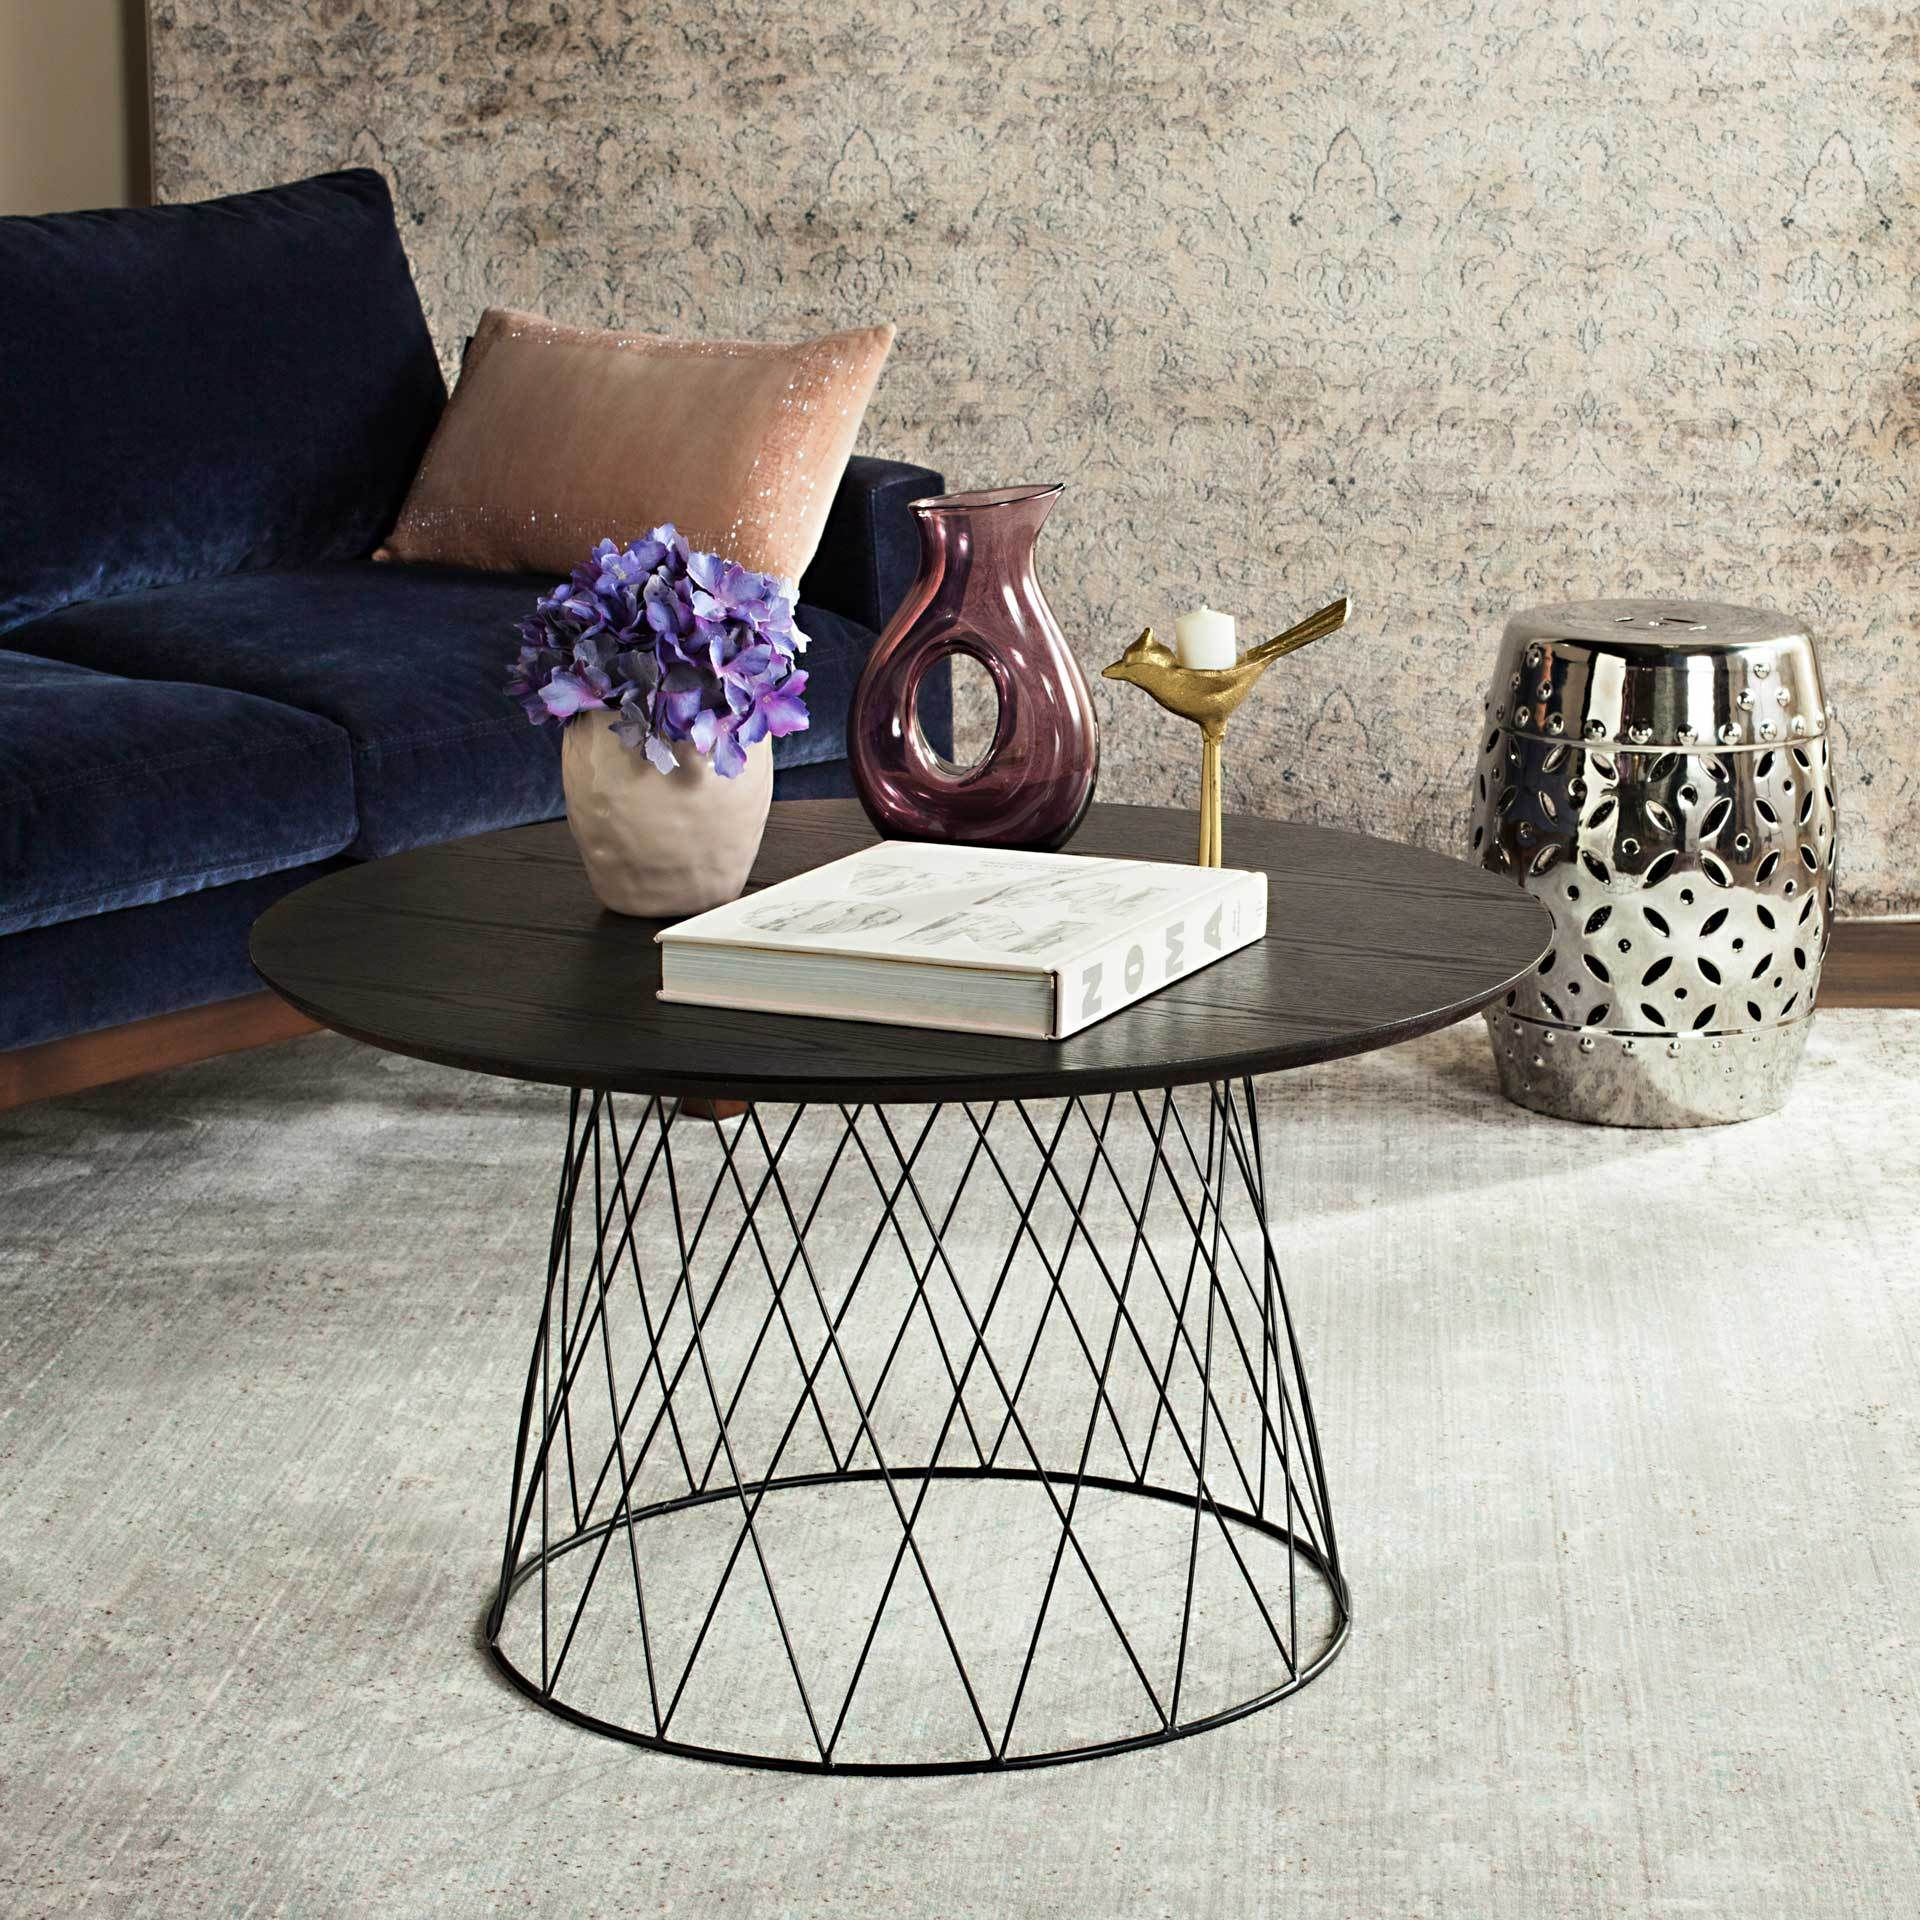 Rocky Wood Coffee Table Black In 2021 Coffee Table Mid Century Coffee Table Black Coffee Tables [ 1920 x 1920 Pixel ]